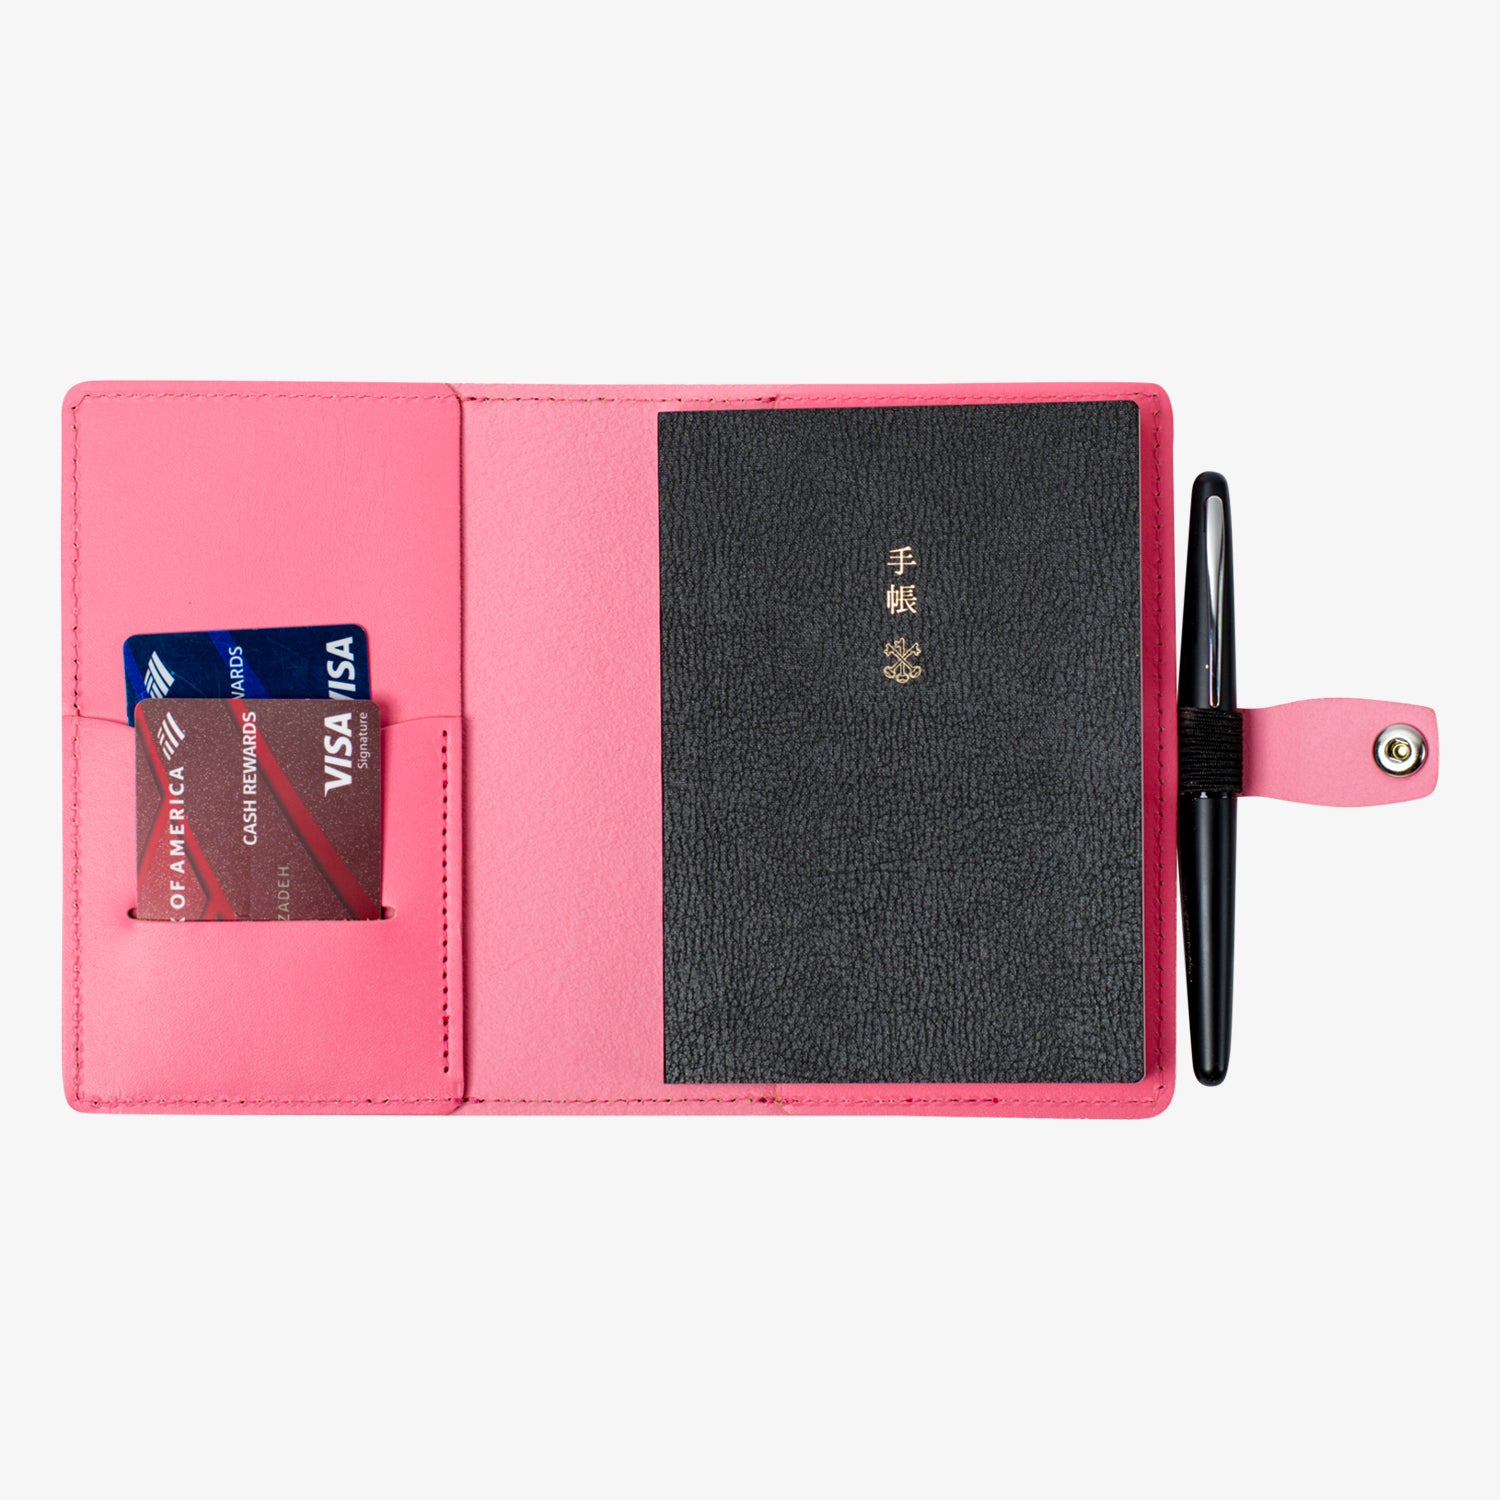 Bainbridge Leather Cover for A6 Notebooks - Pink